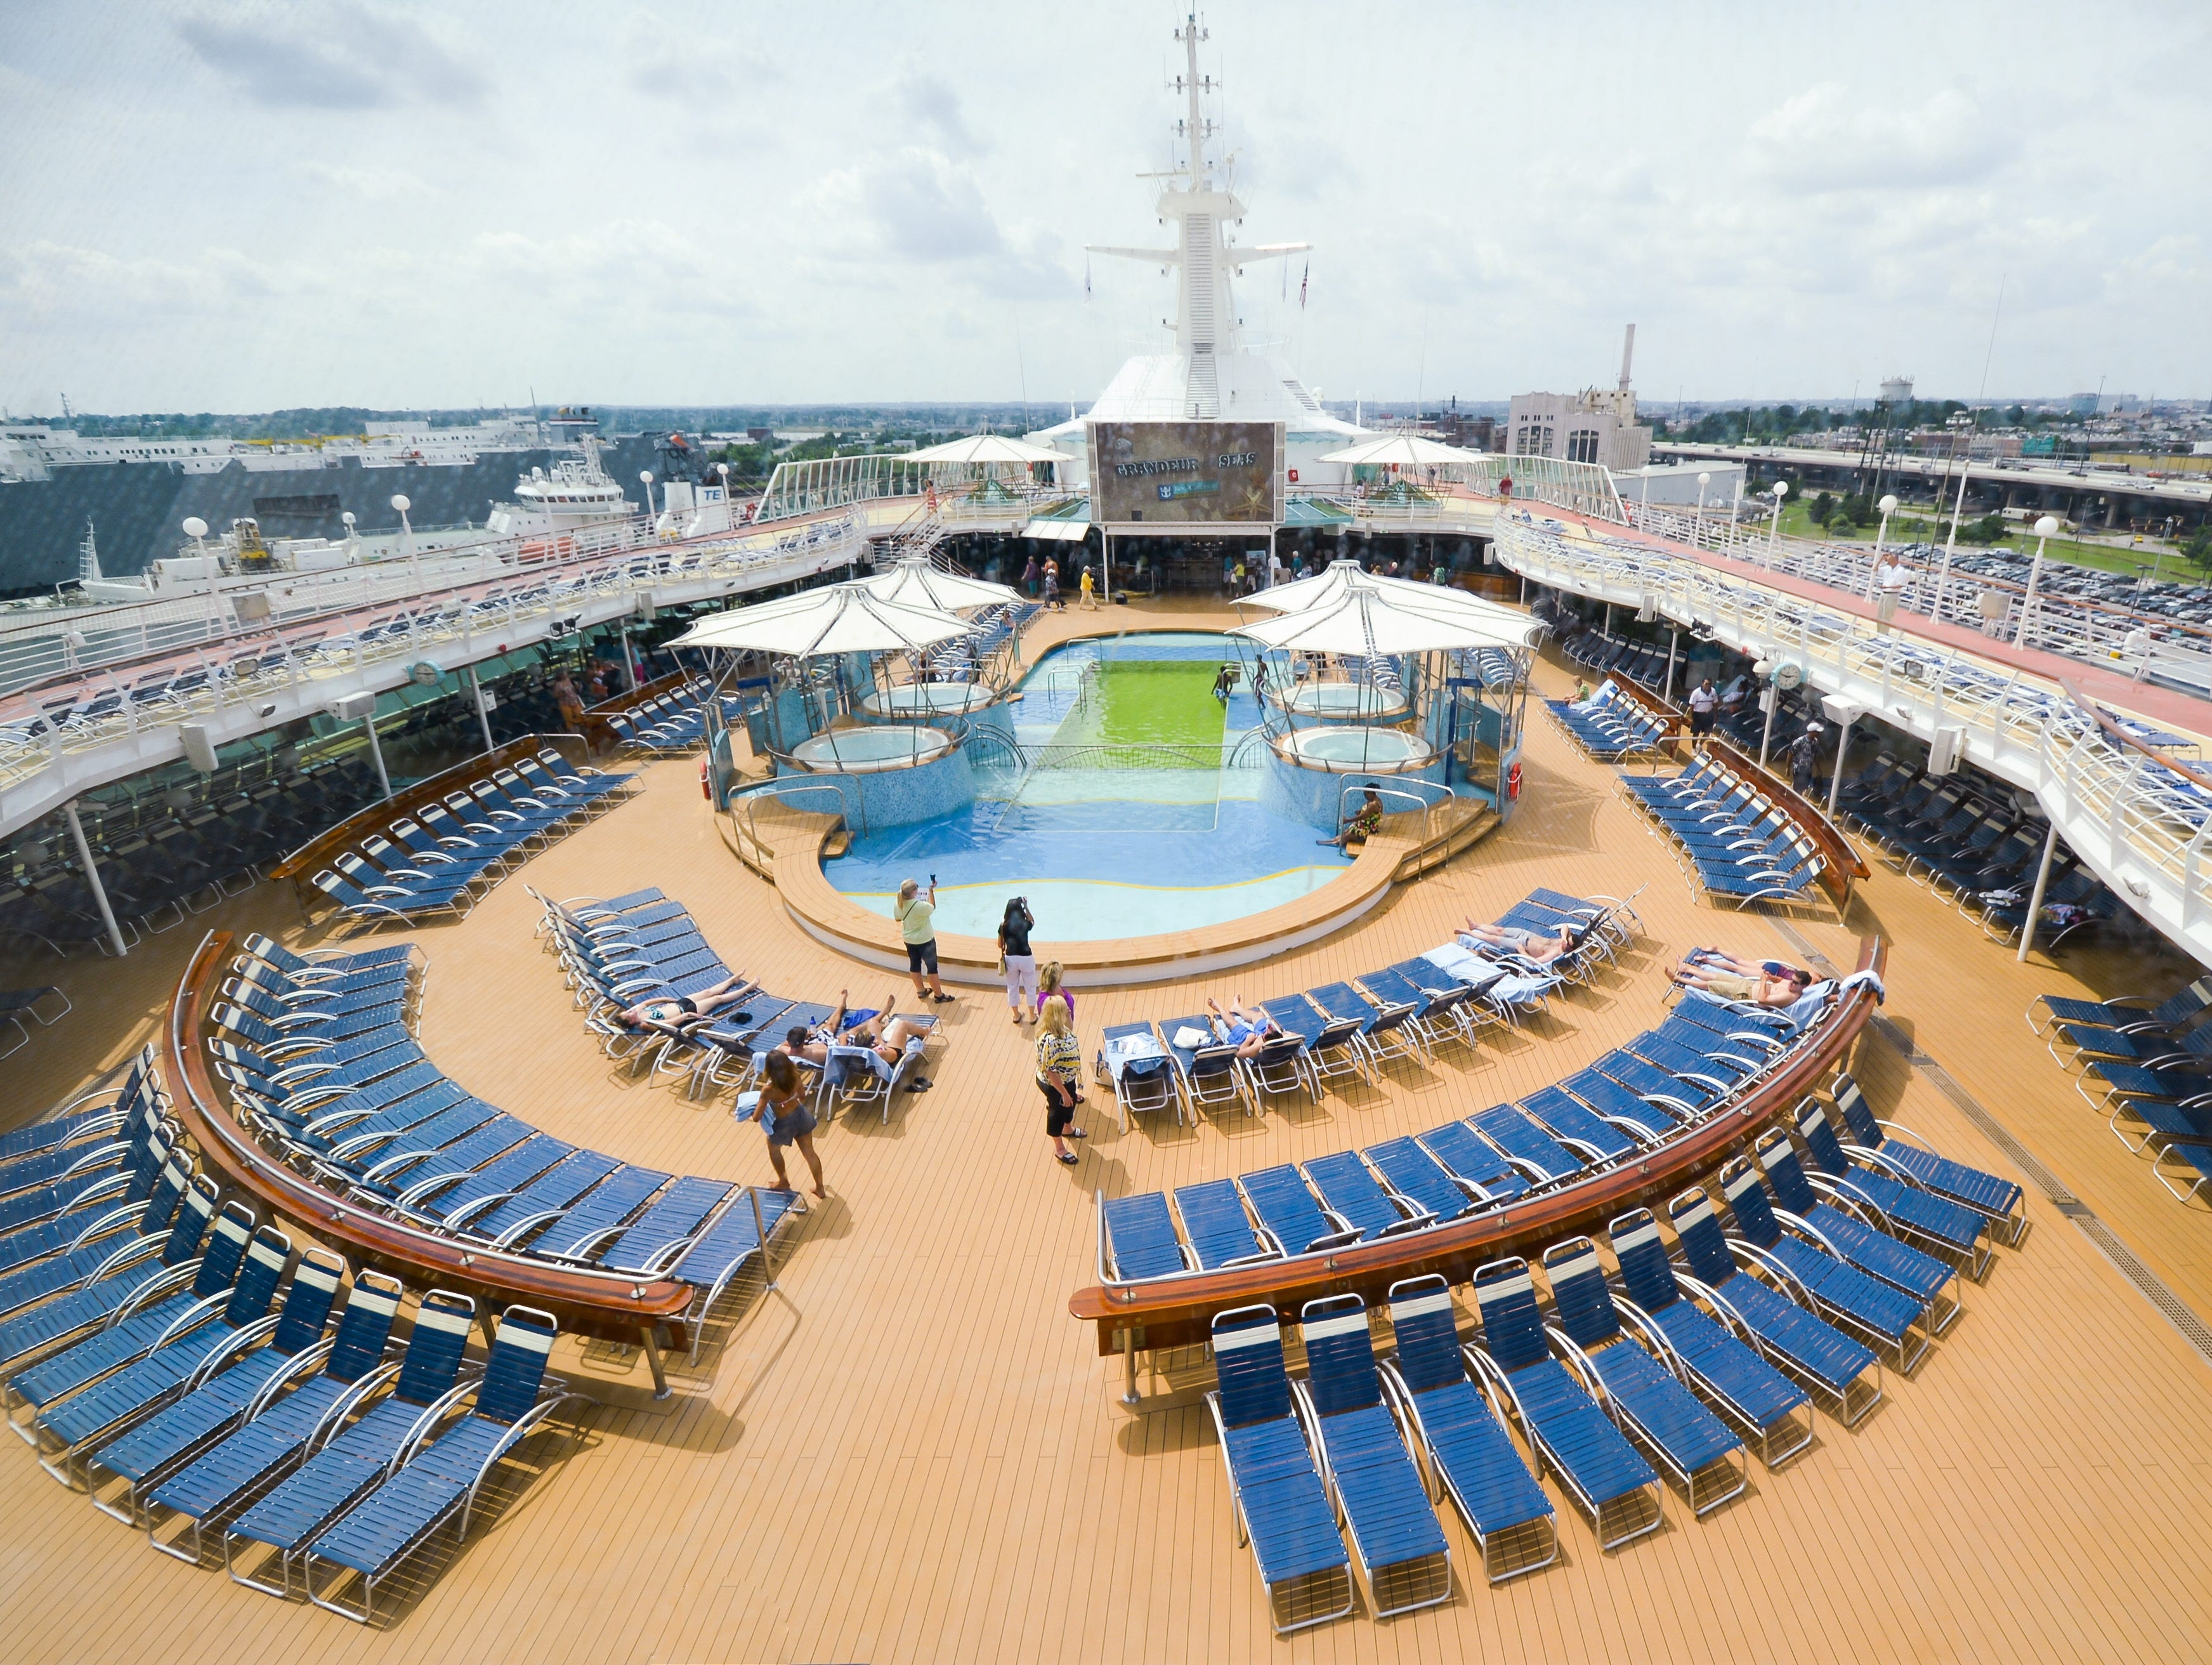 The hub of Grandeur of the Seas' top deck areas is the centrally-located main pool, which is flanked by four hot tubs.